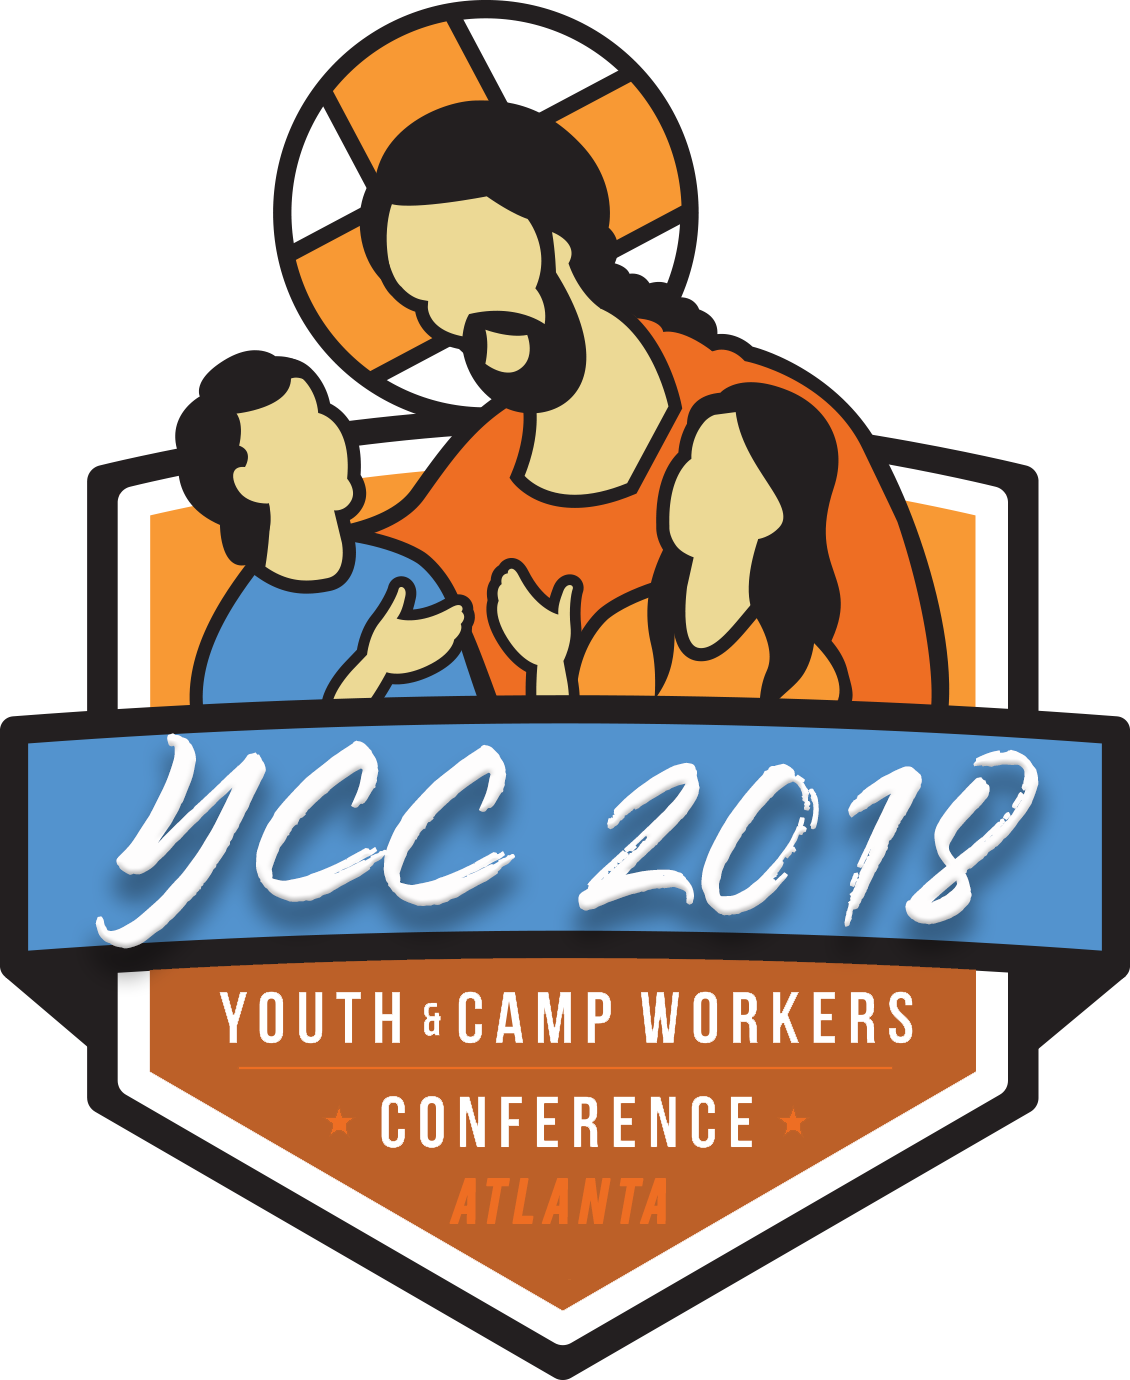 Topics and speakers orthodox. Missions clipart youth leadership